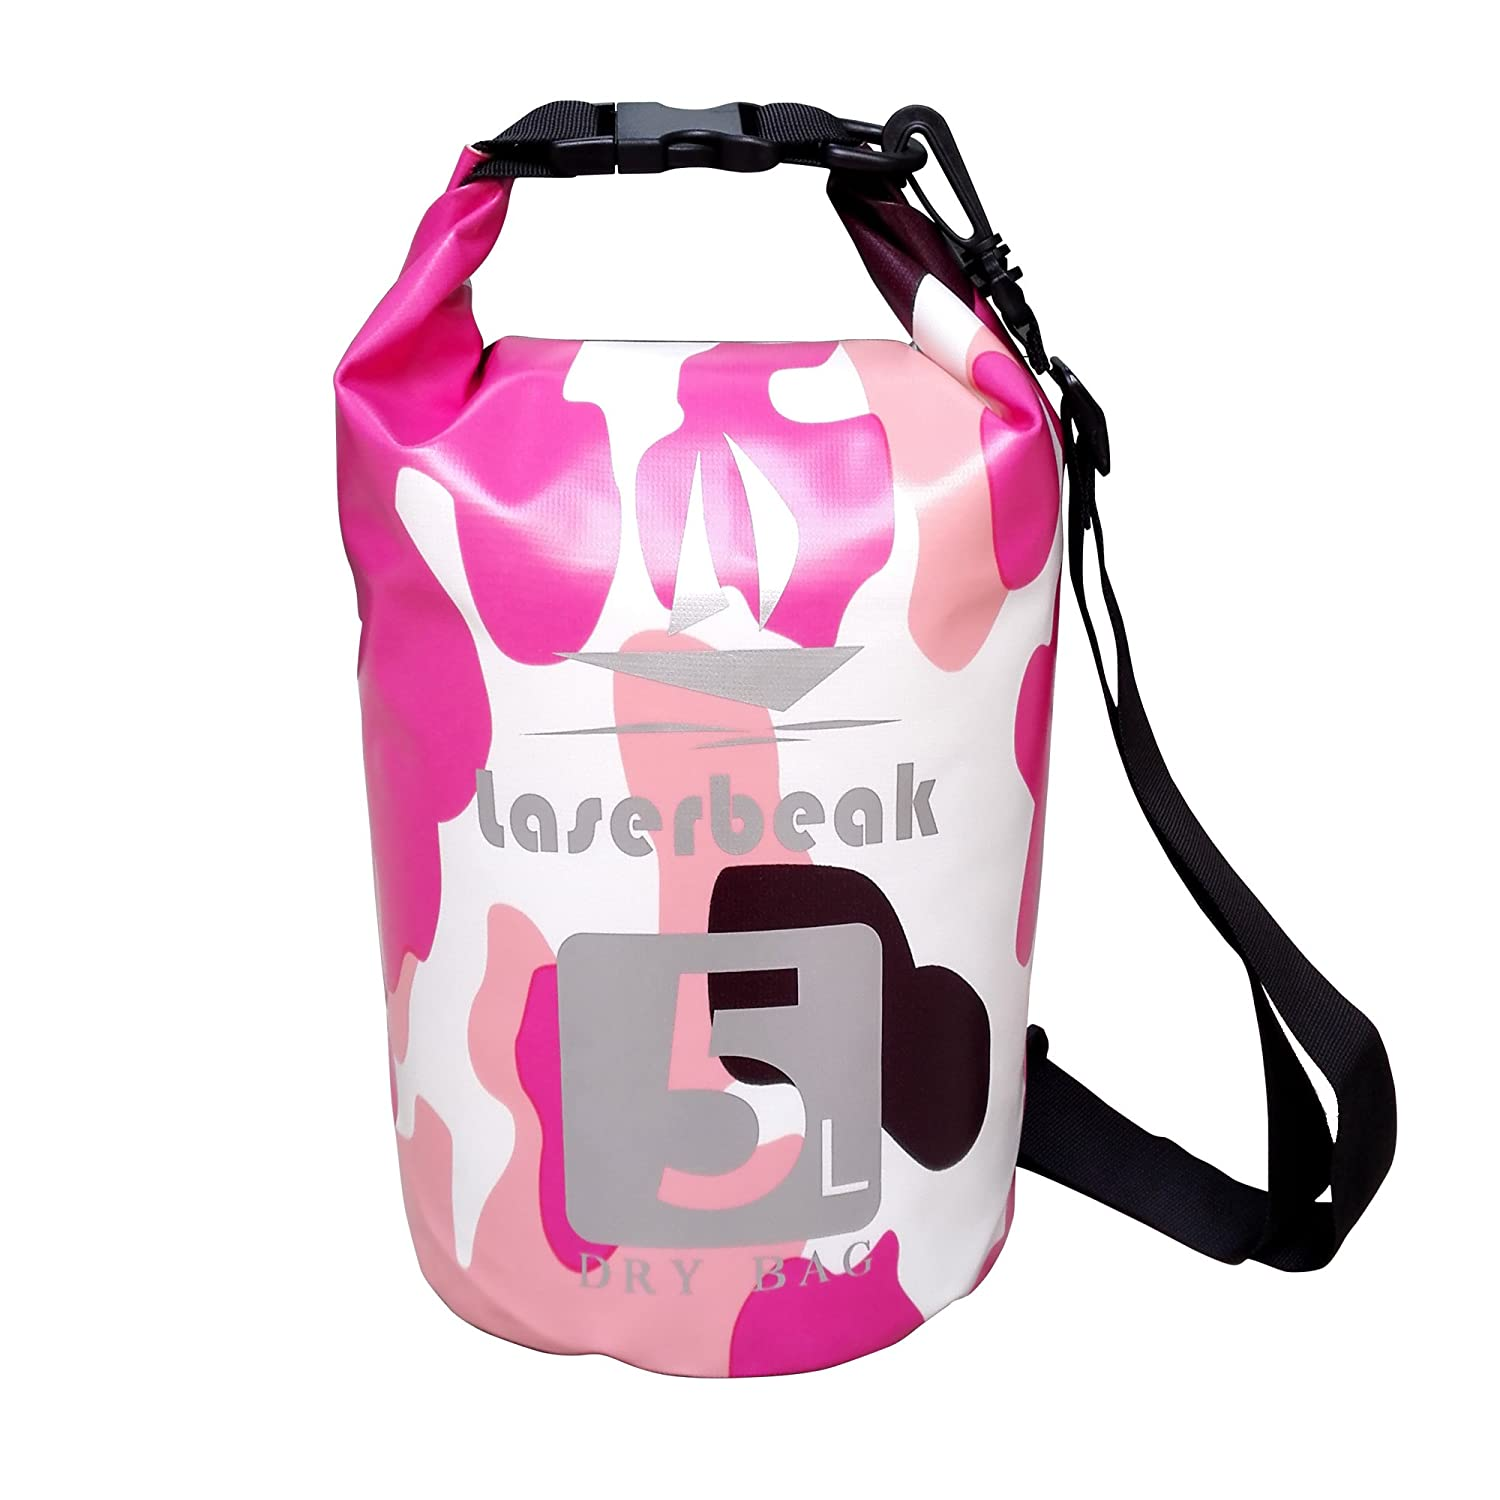 Dry Bag Waterproof Roll Top Dry Bag for Kayaking, Beach, Rafting, Boating, Hiking, Camping and Fishing IRON FIST TECH